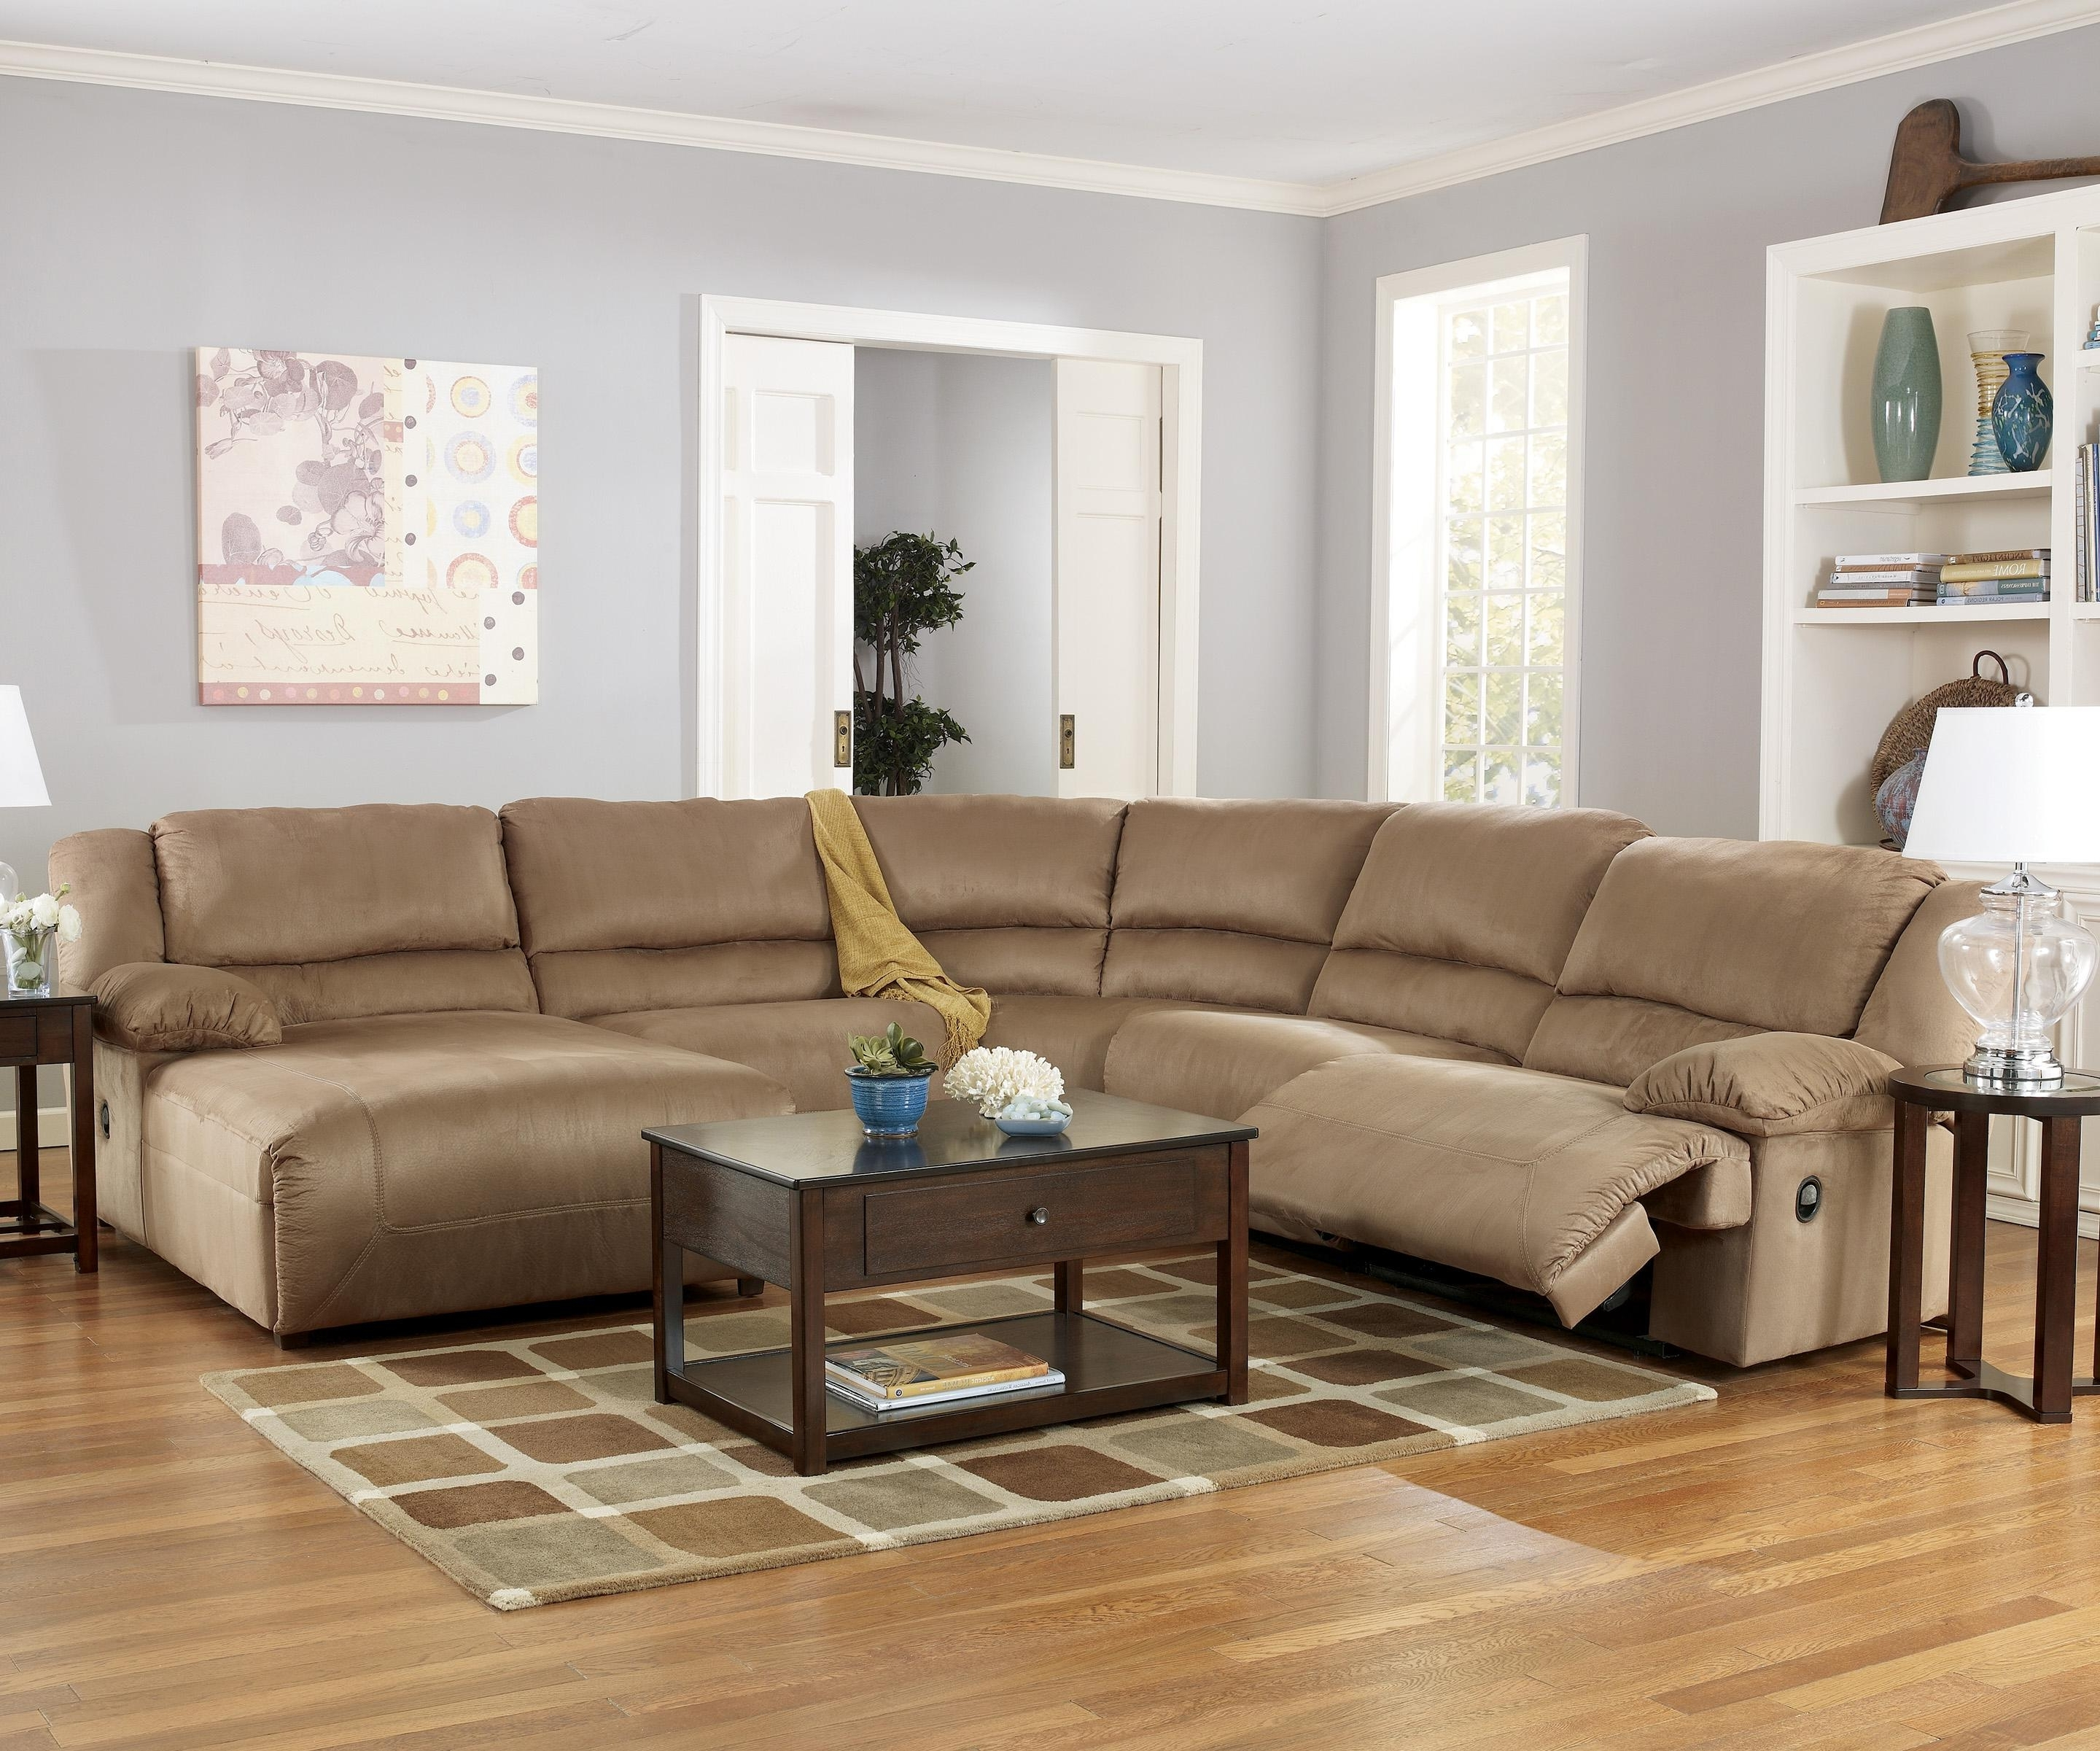 20 Best Collection of Orlando Sectional Sofas